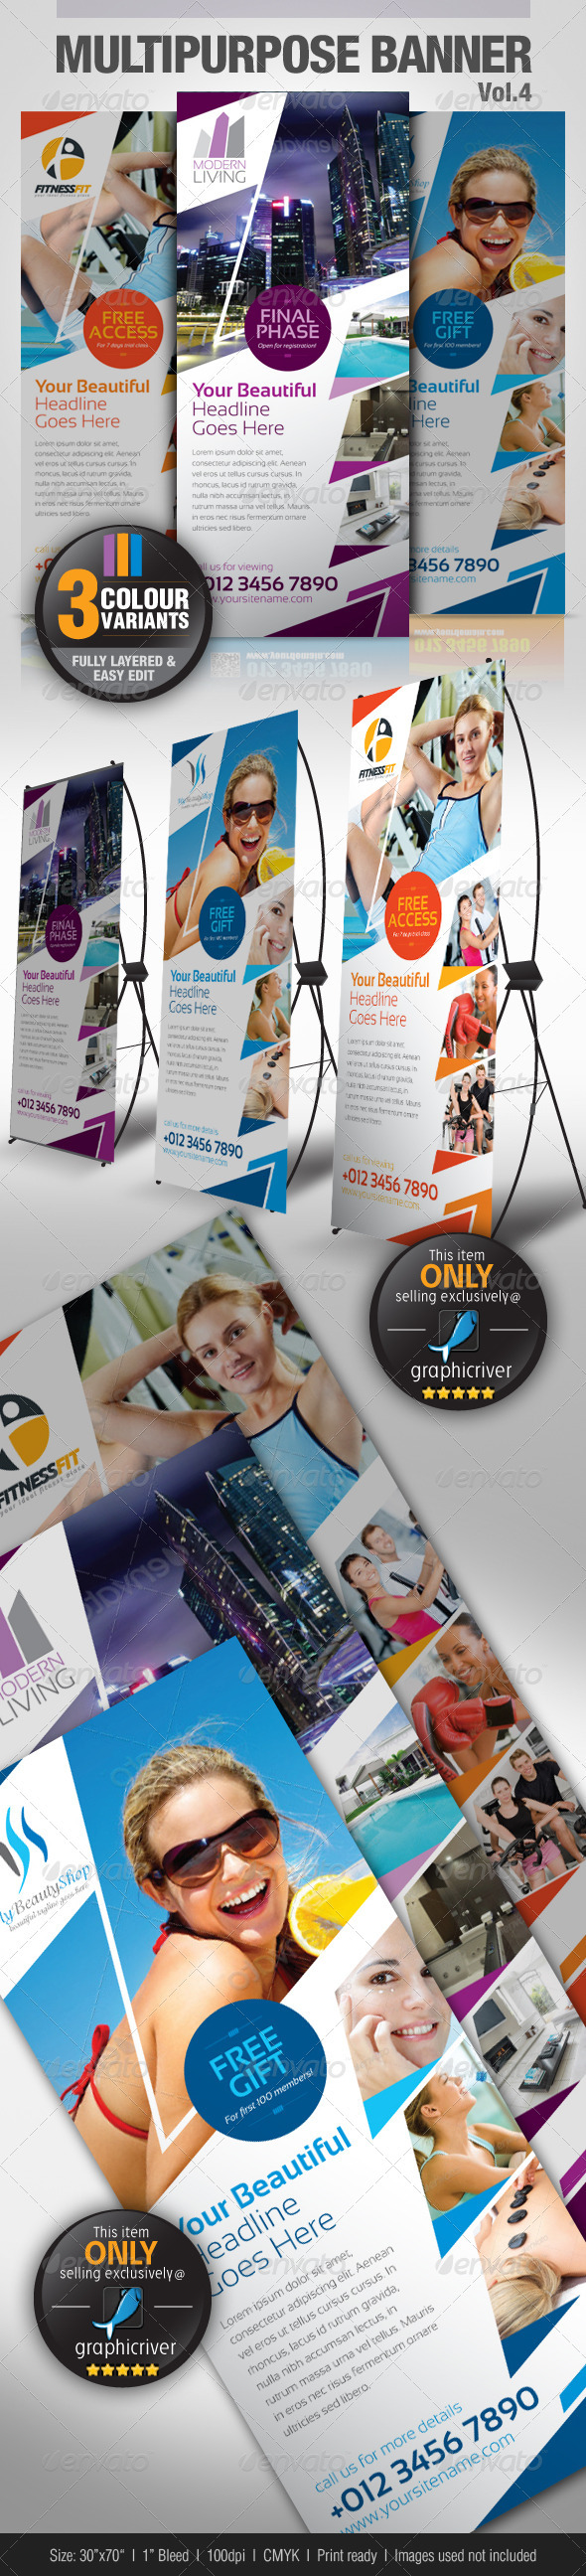 GraphicRiver Multipurpose Banner Vol.4 2924963